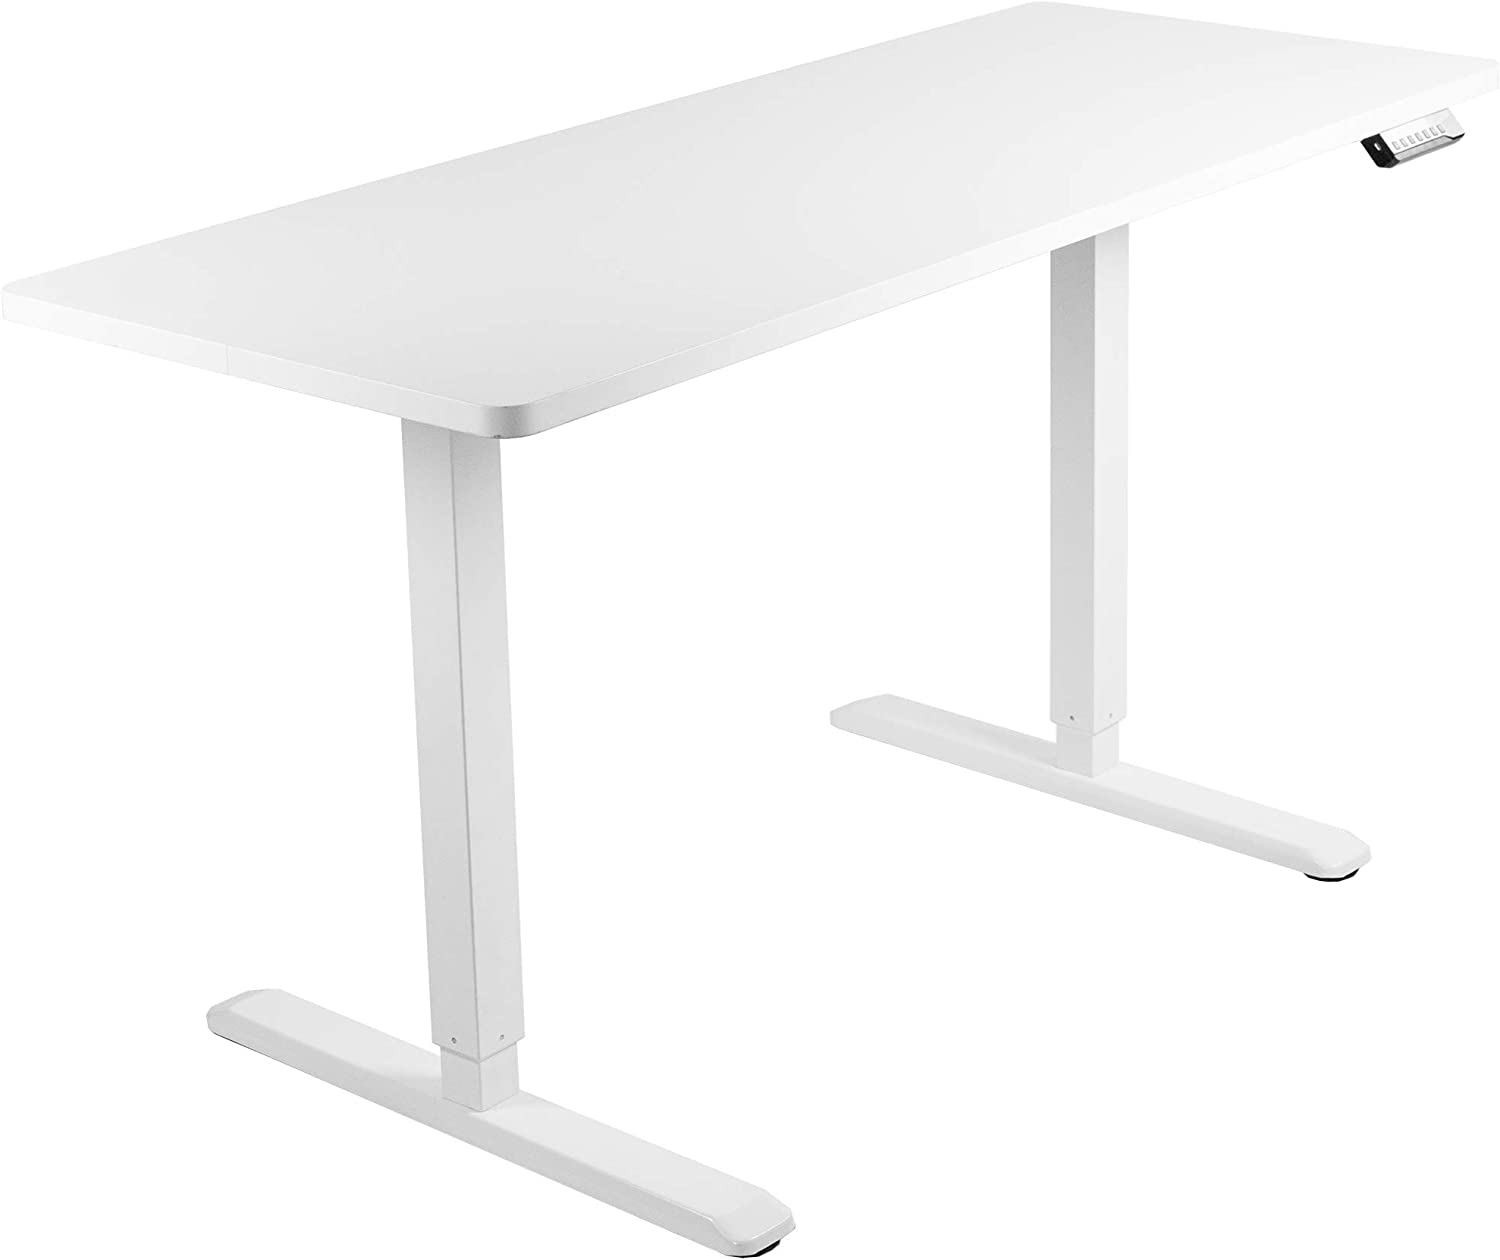 VIVO Electric 60 x 24 inch Stand Up Desk, White Solid One-Piece Table Top, White Frame, Height Adjustable Standing Workstation with Memory Preset Controller (DESK-KIT-1W6W)